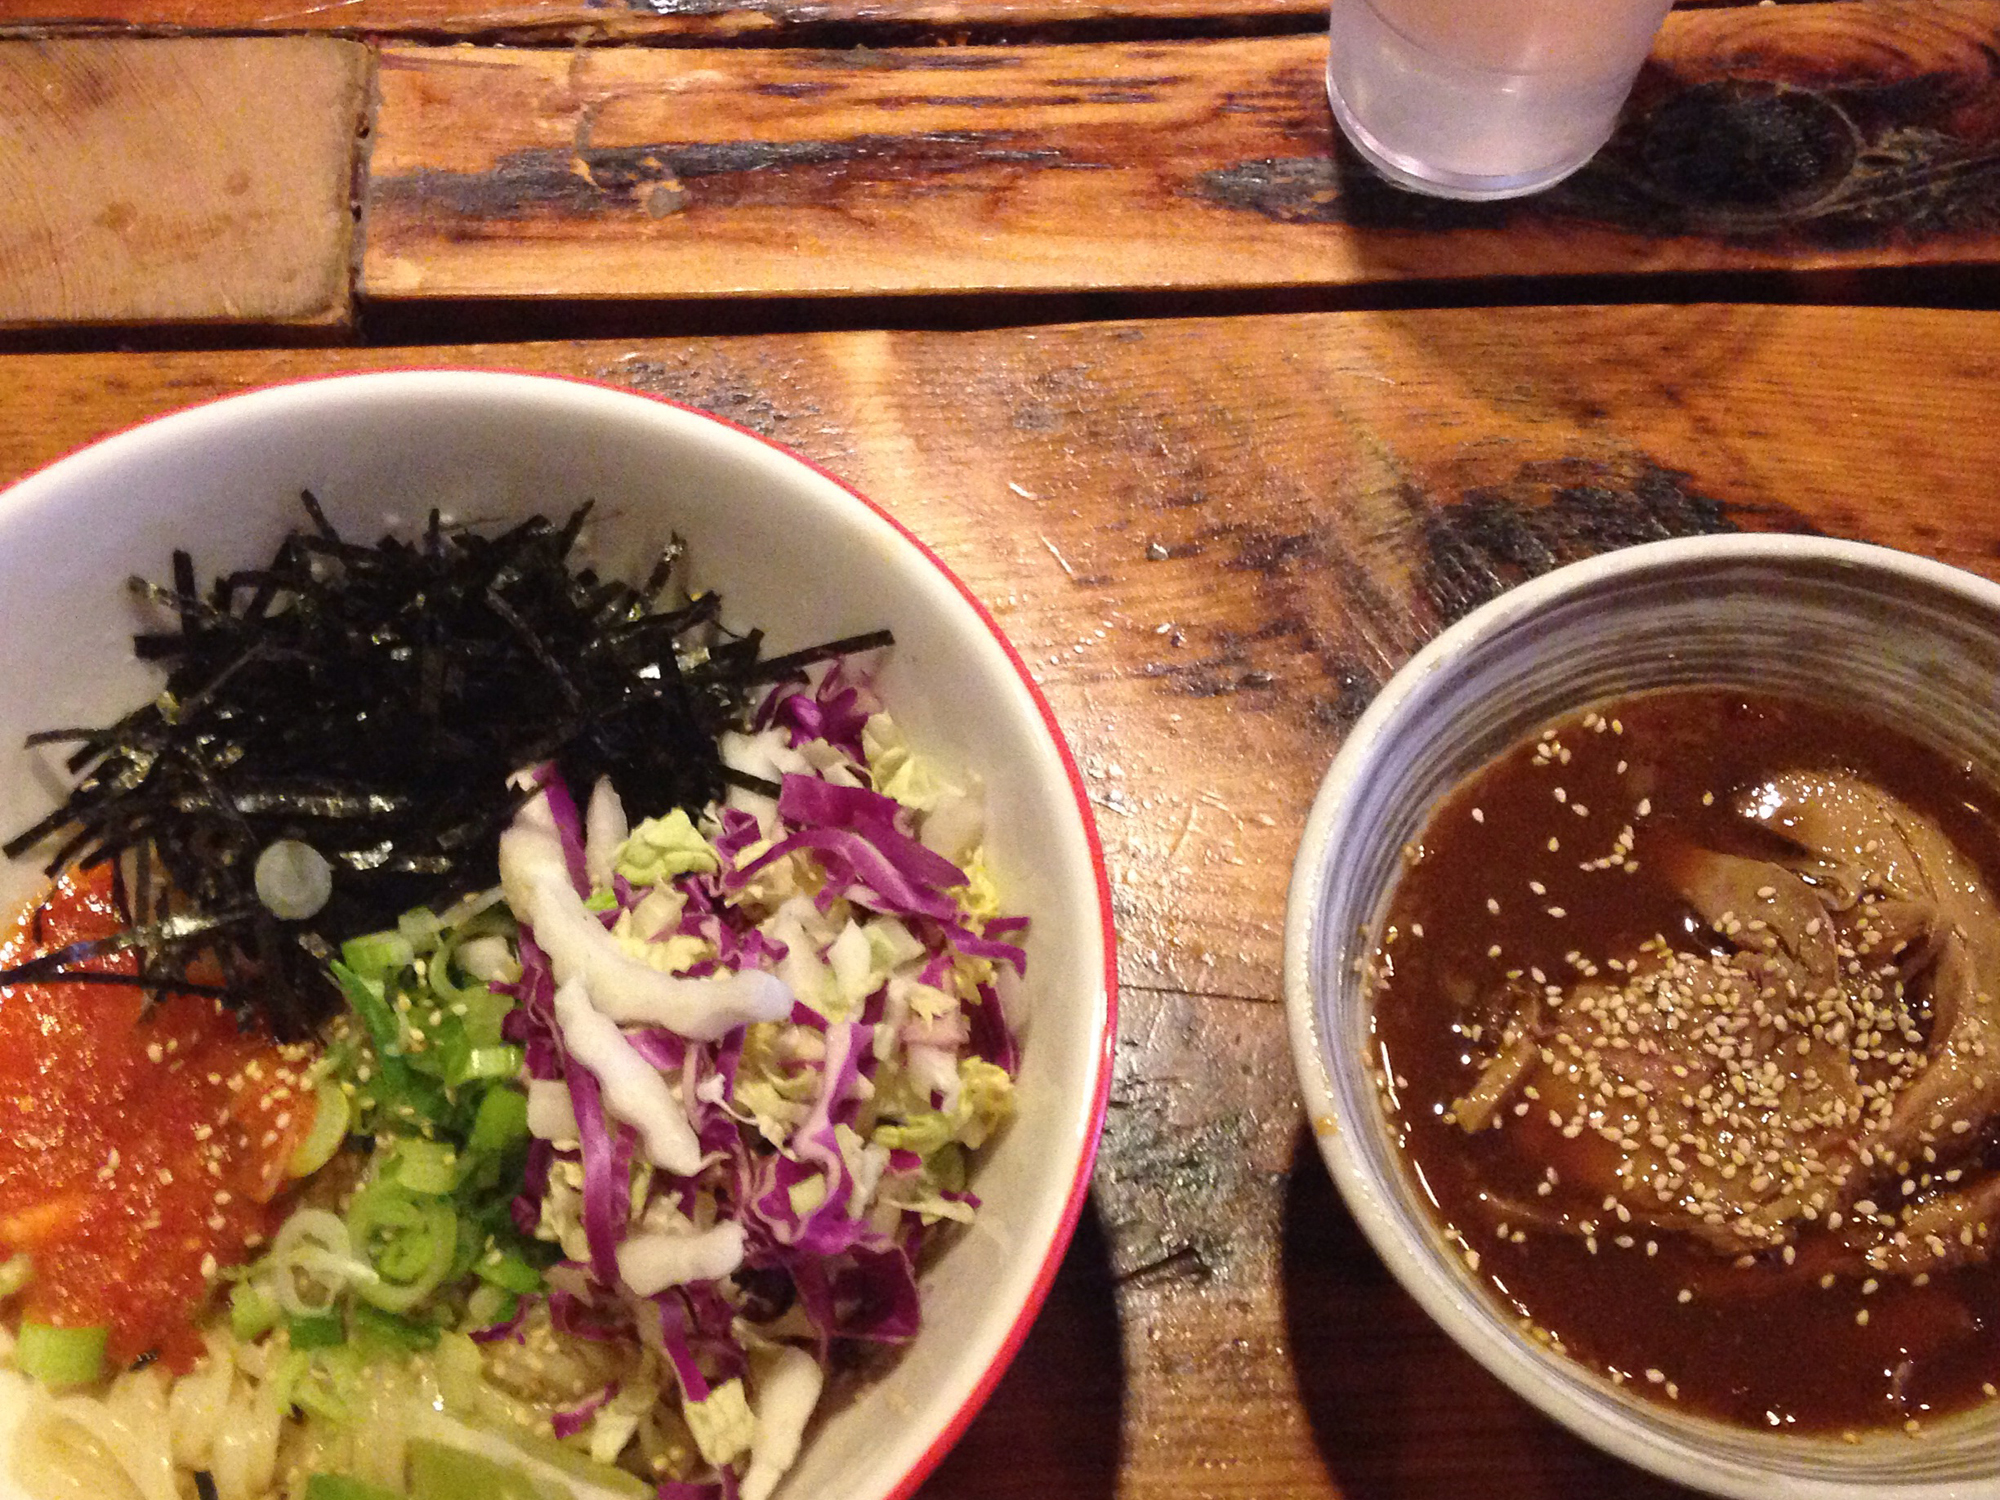 SEE FURIOUS SPOON MAKE TSUKEMEN FROM THE NOODLES UP